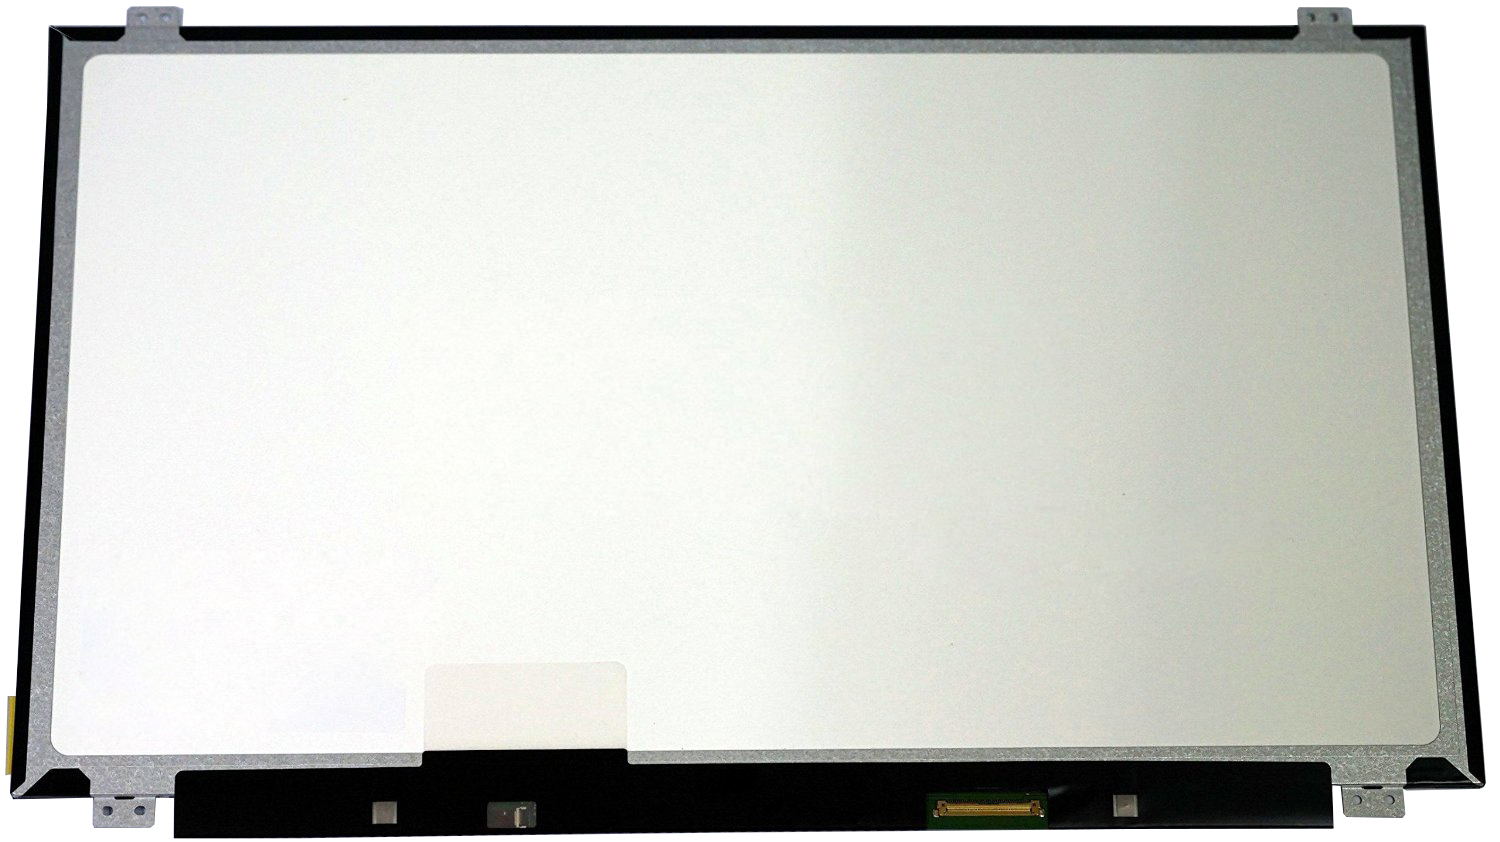 QuYing Laptop LCD Screen for ACER ASPIRE E5-552G E5-532 ES1-521 ES1-531 E5-574 ES1-571 E1-522 SERIES quying laptop lcd screen for acer aspire v5 571p v5 552pg e5 531 es1 512 e5 572g e5 573 e5 573g series 15 6 1366x768 30pin